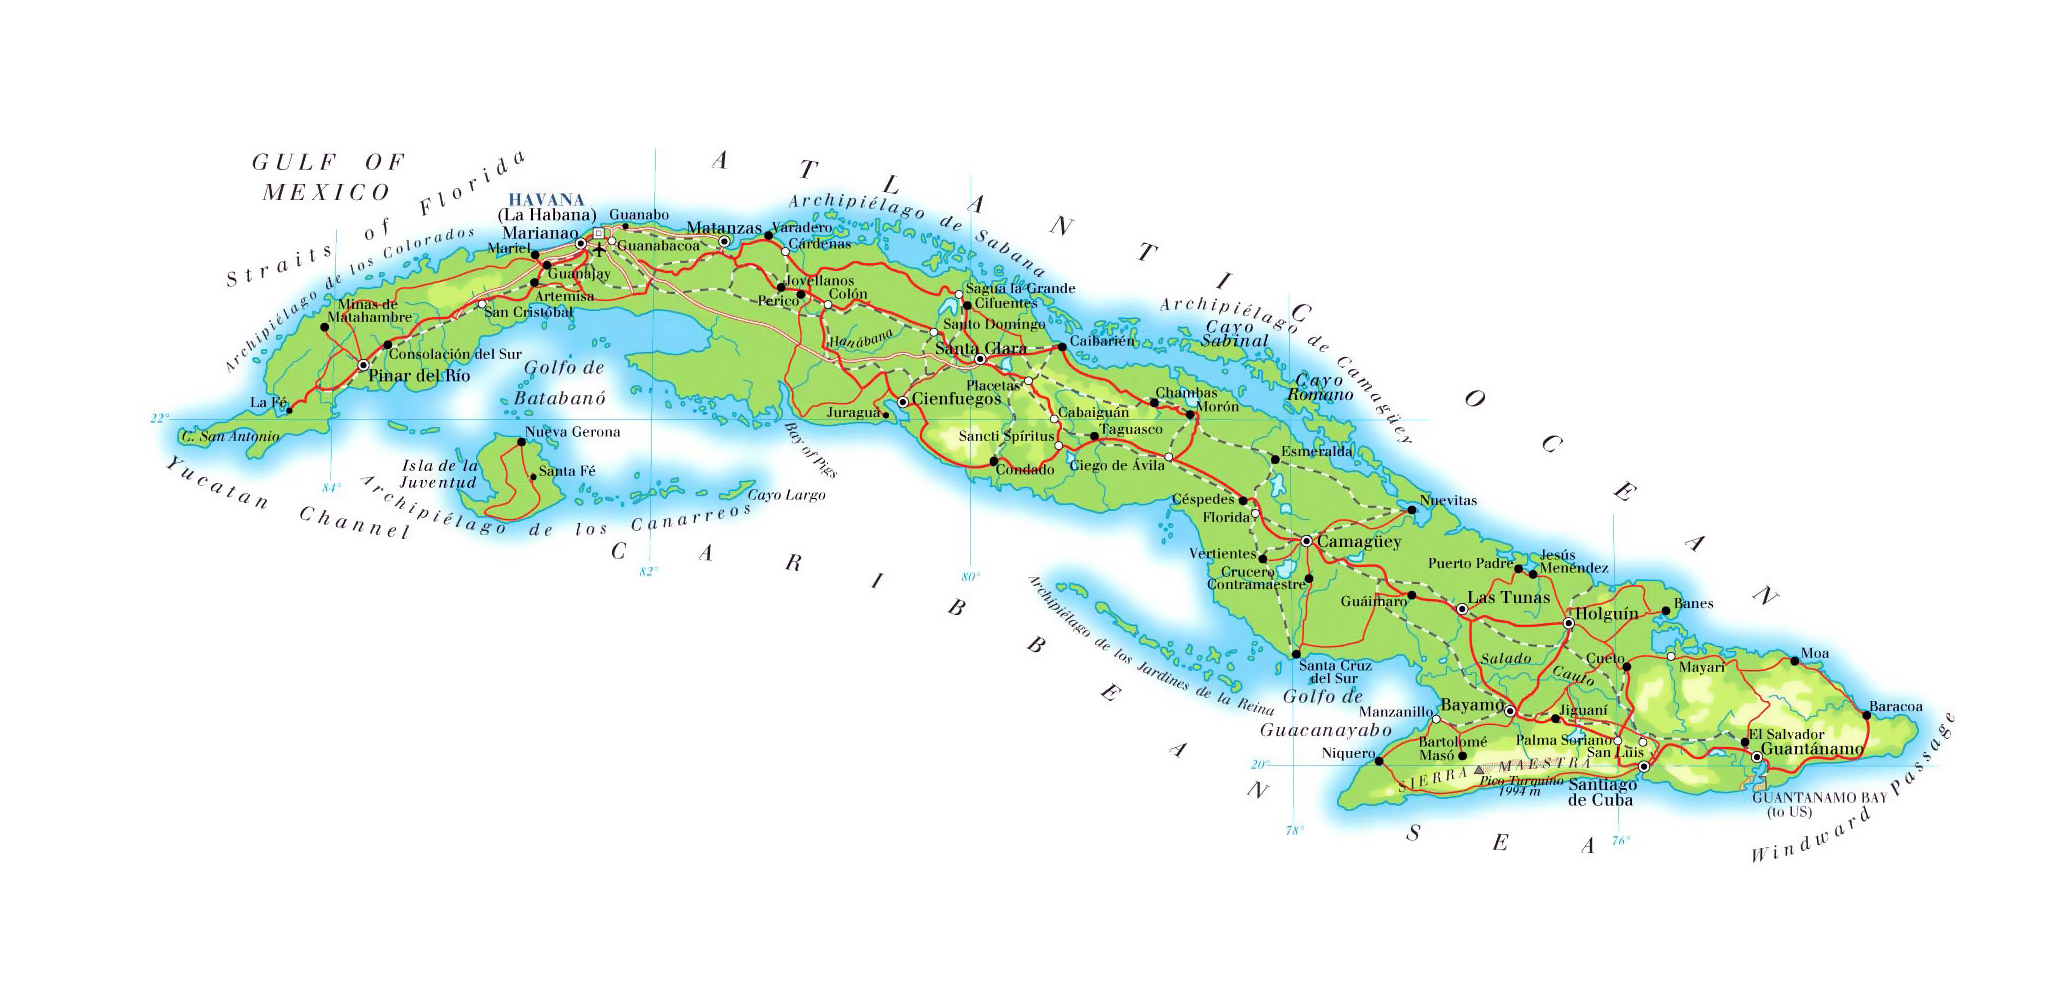 Large elevation map of Cuba with roads railroads major cities and